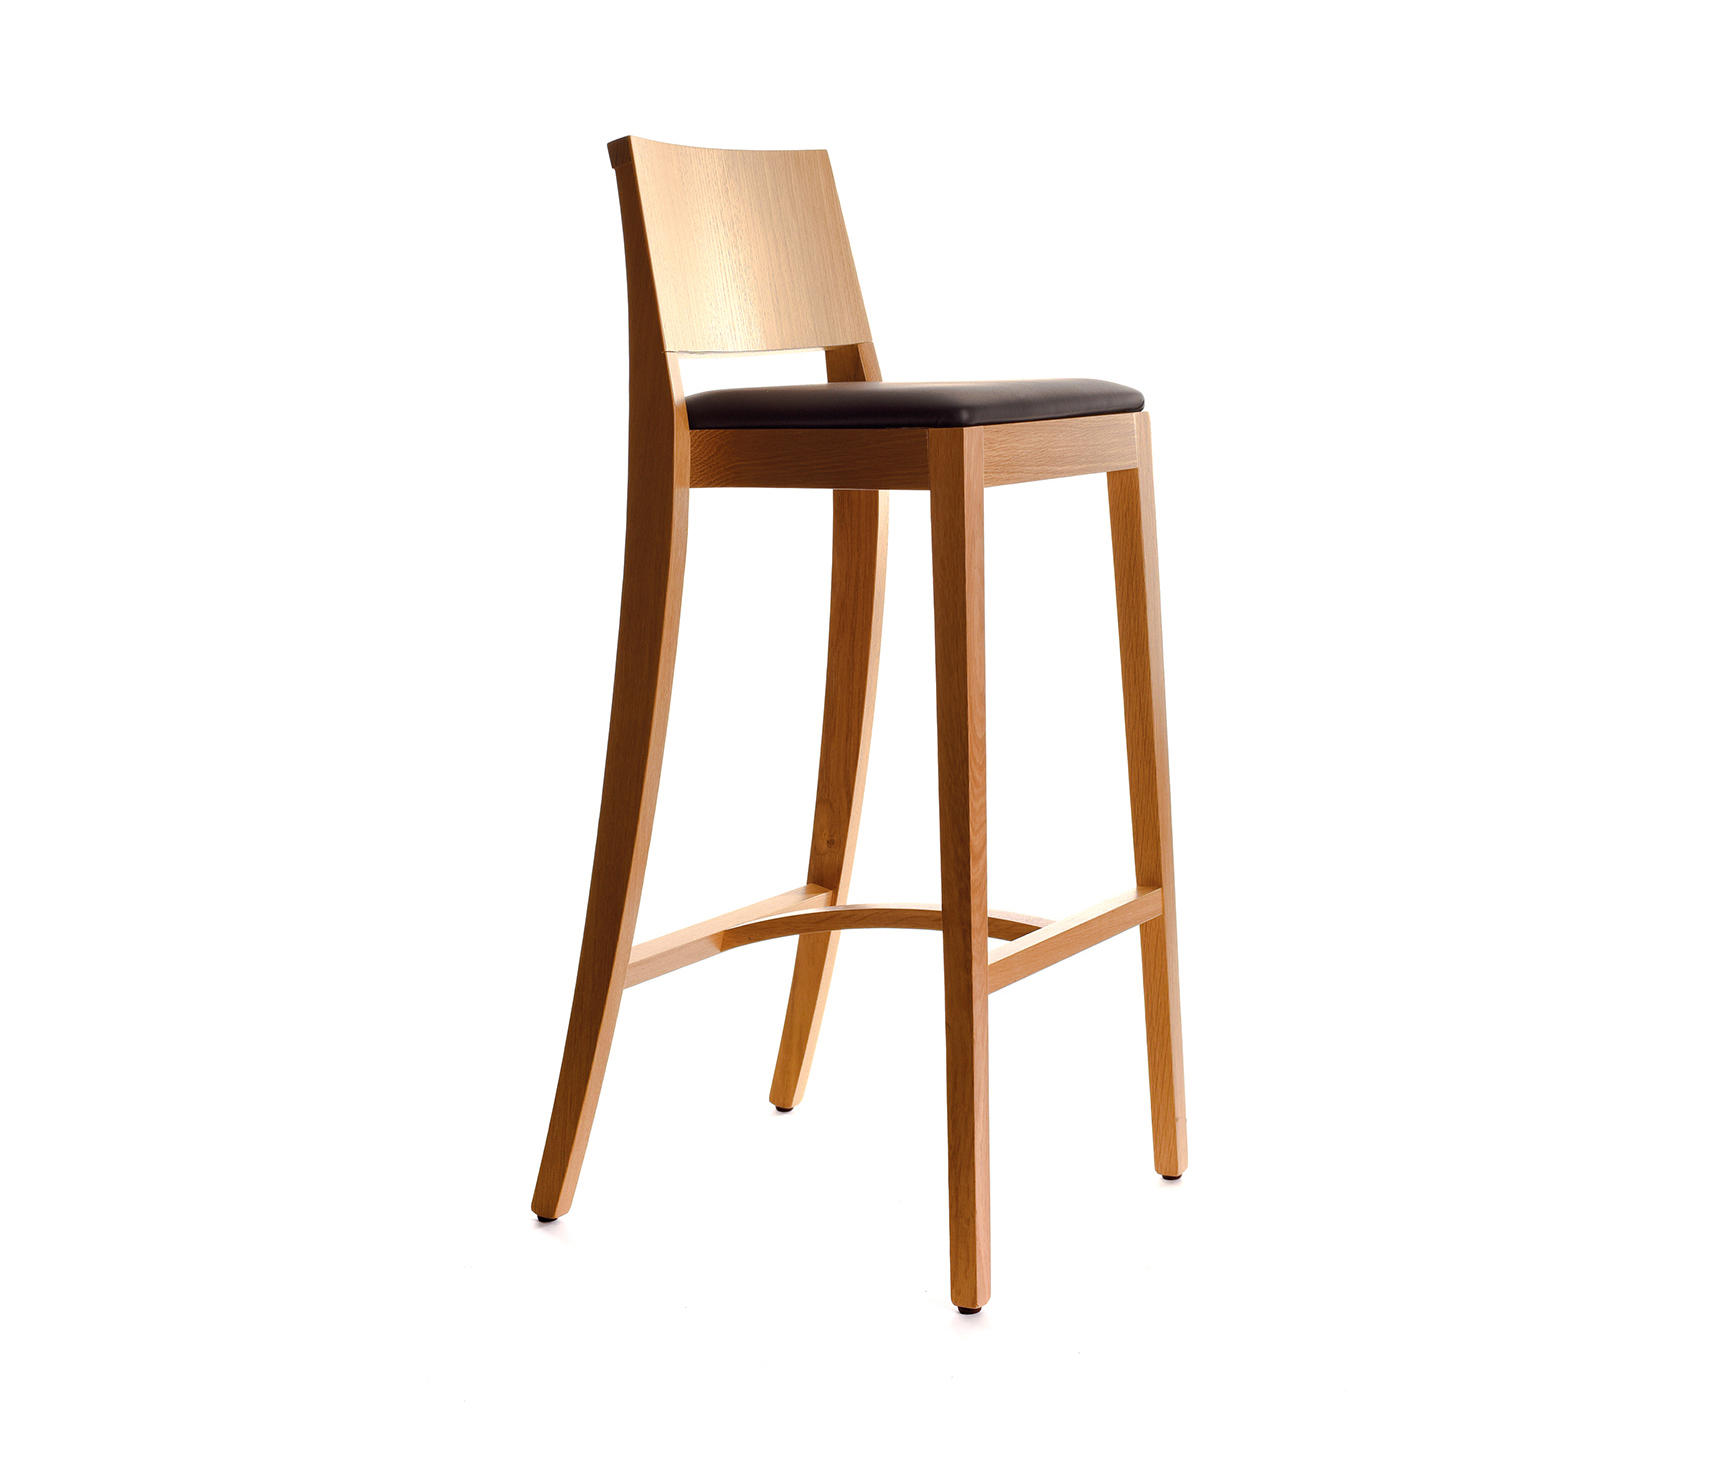 holz barstuhl osiris bar stools from manufakt architonic. Black Bedroom Furniture Sets. Home Design Ideas